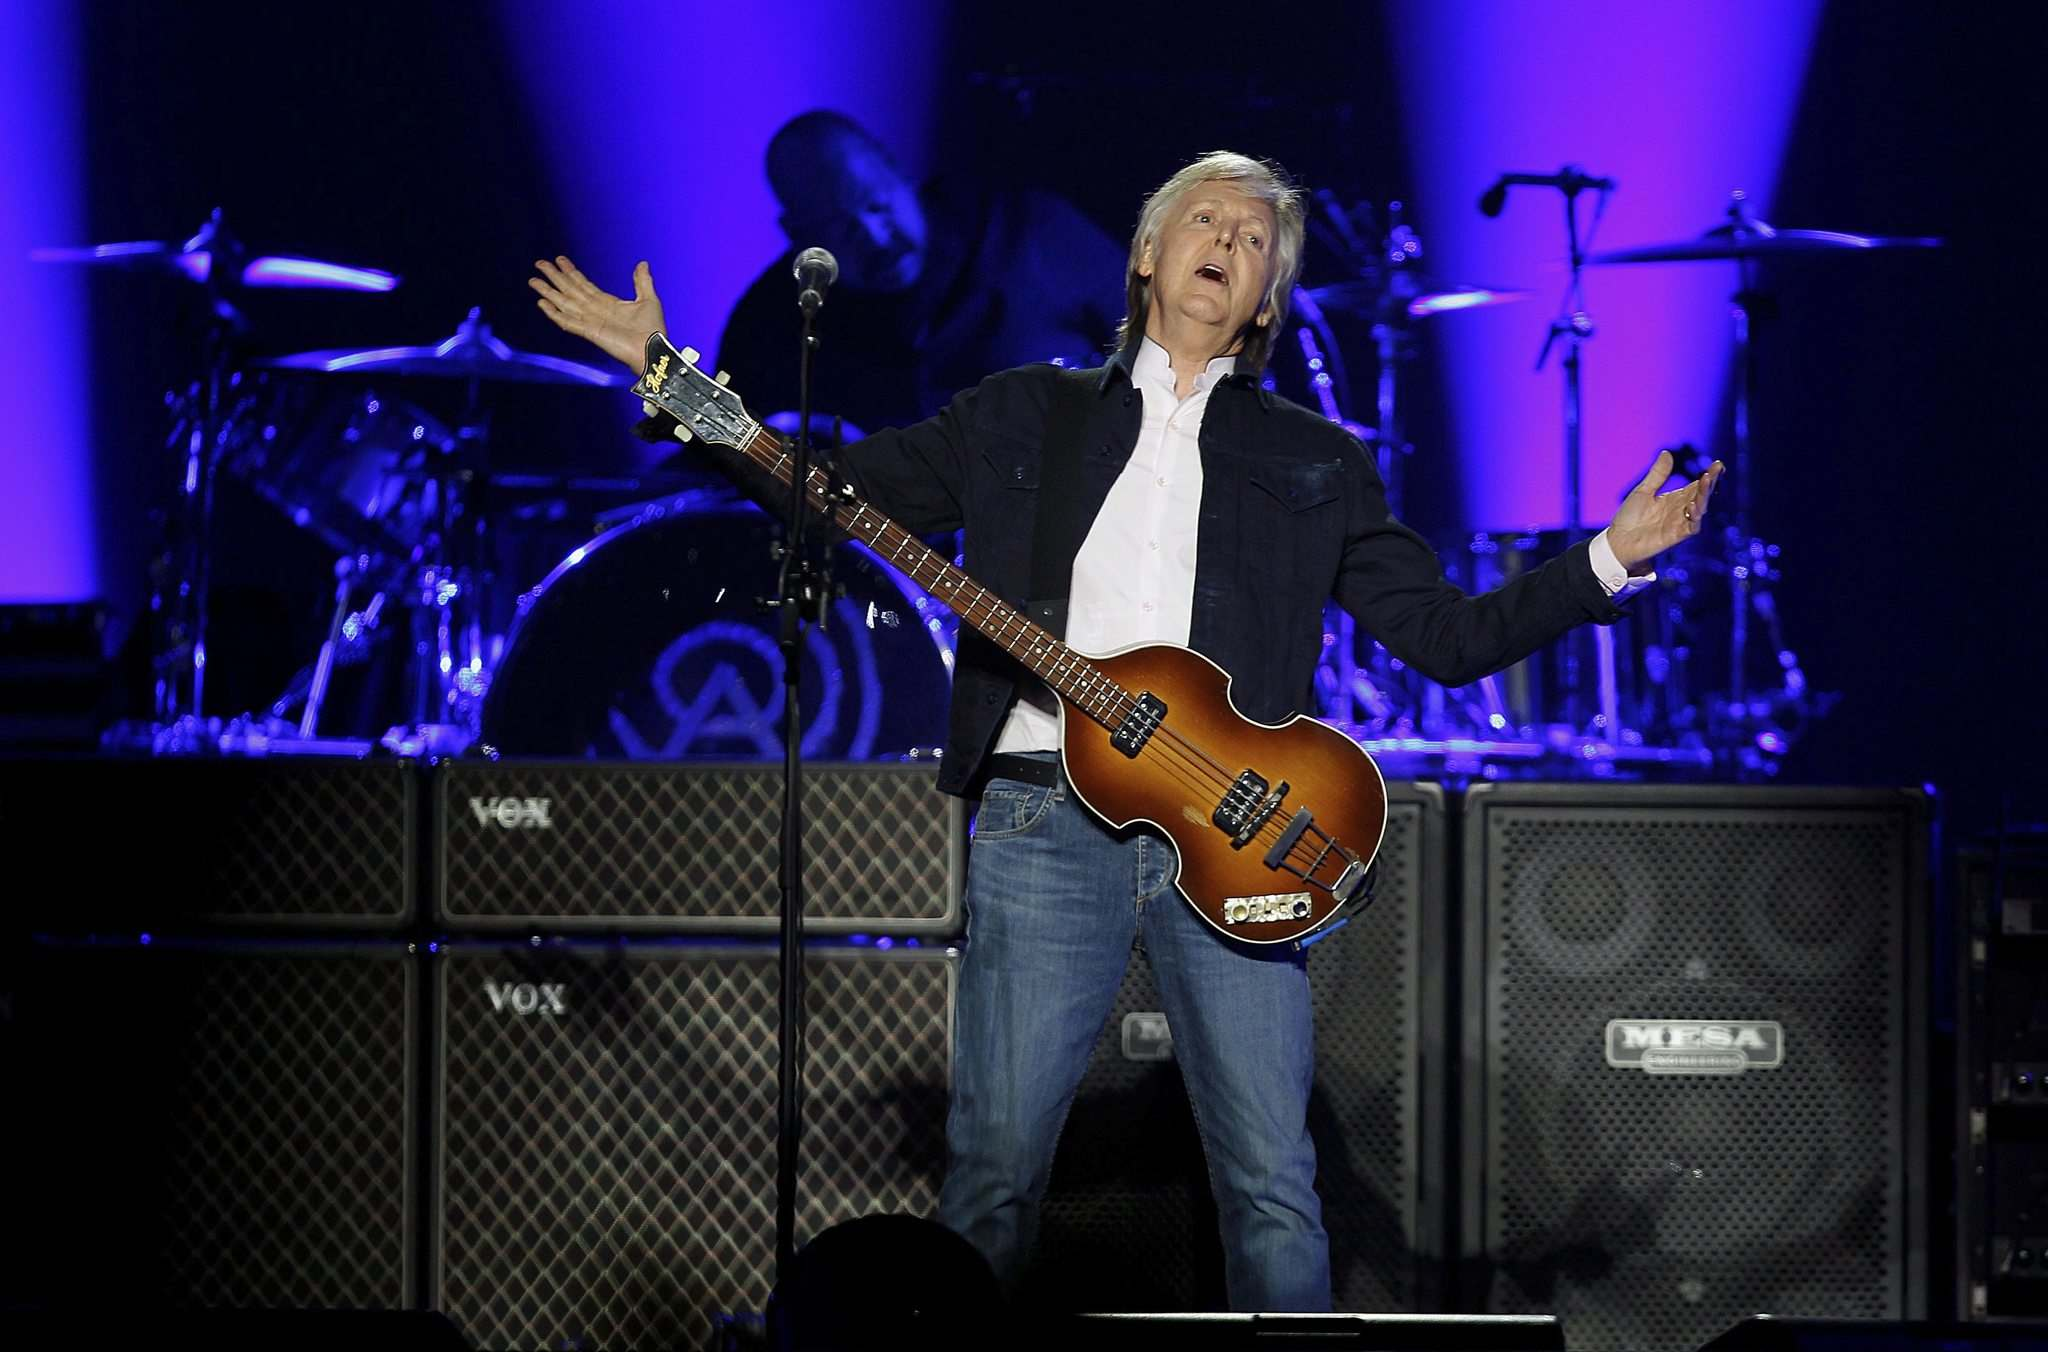 Donnelly considers Paul McCartney his biggest get for a concert in Winnipeg. (Phil Hossack / Free Press files)